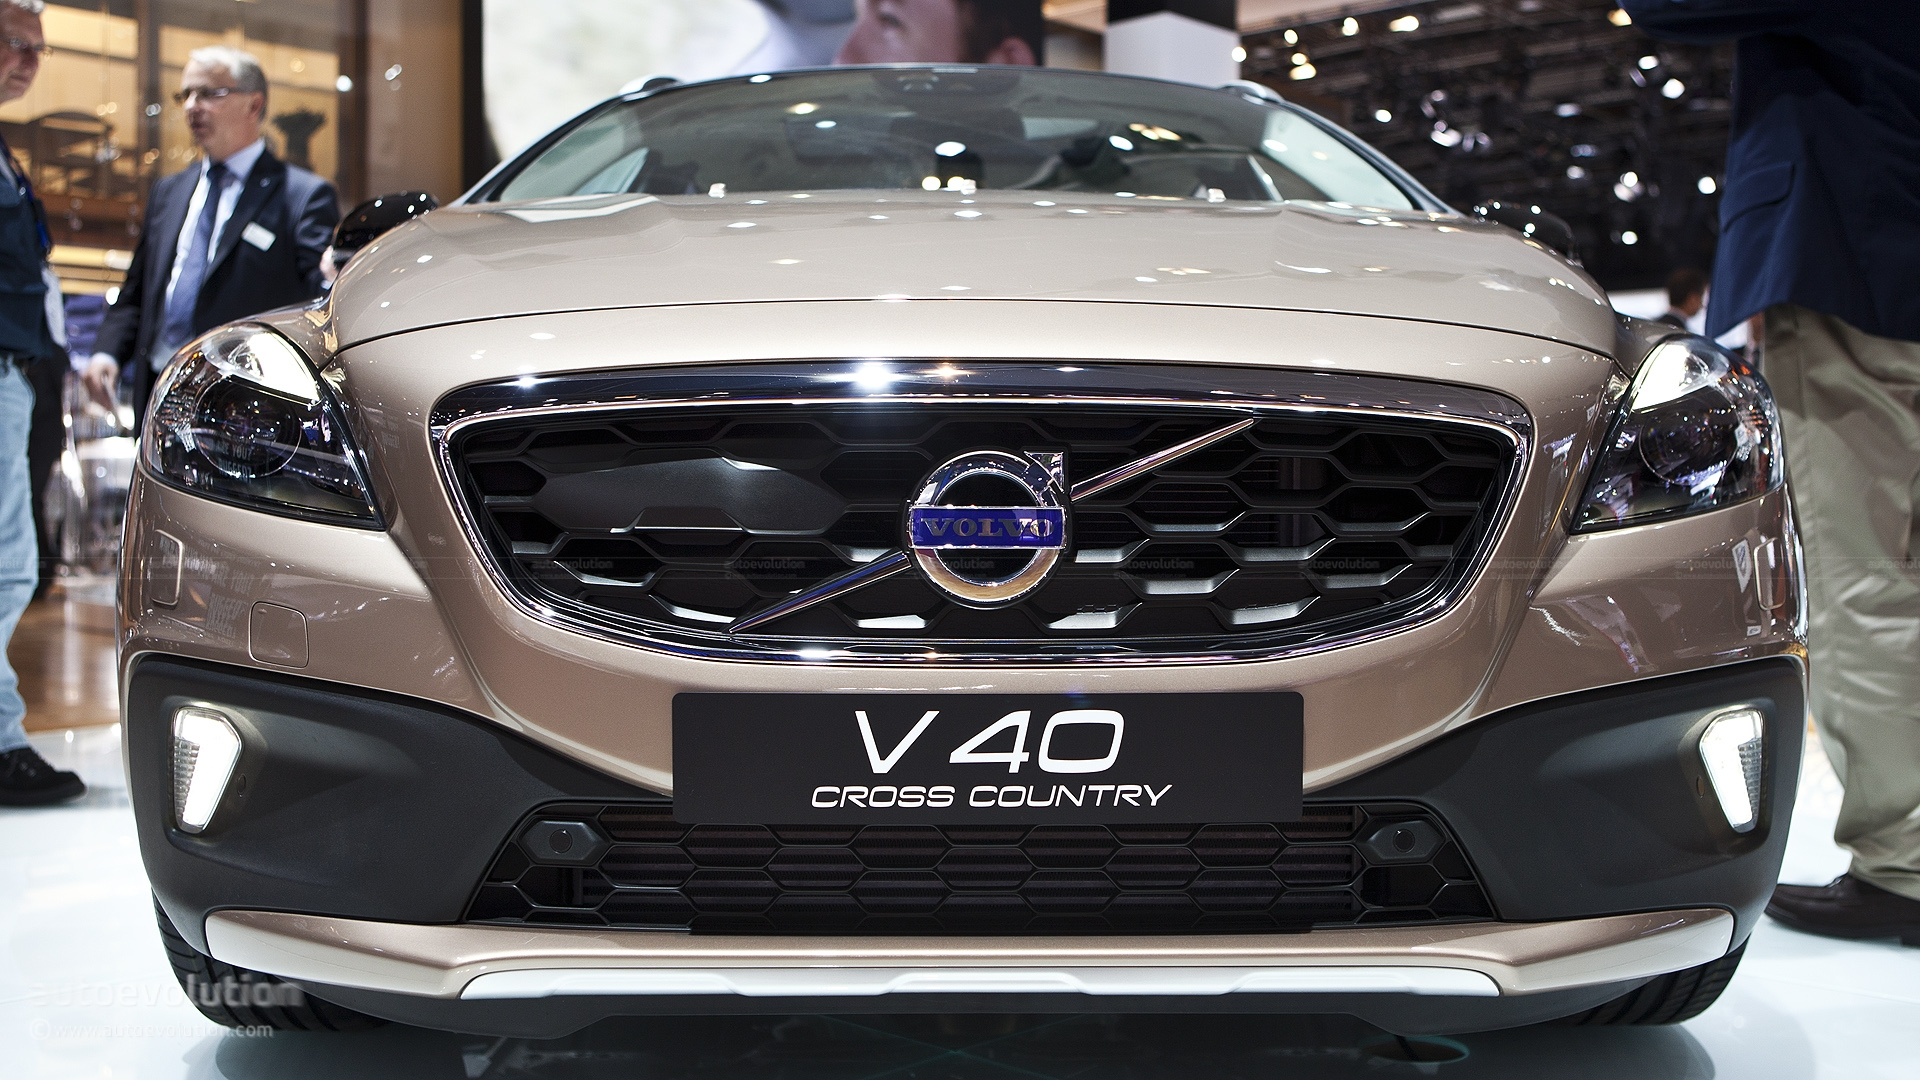 paris 2012 volvo v40 cross country. Black Bedroom Furniture Sets. Home Design Ideas